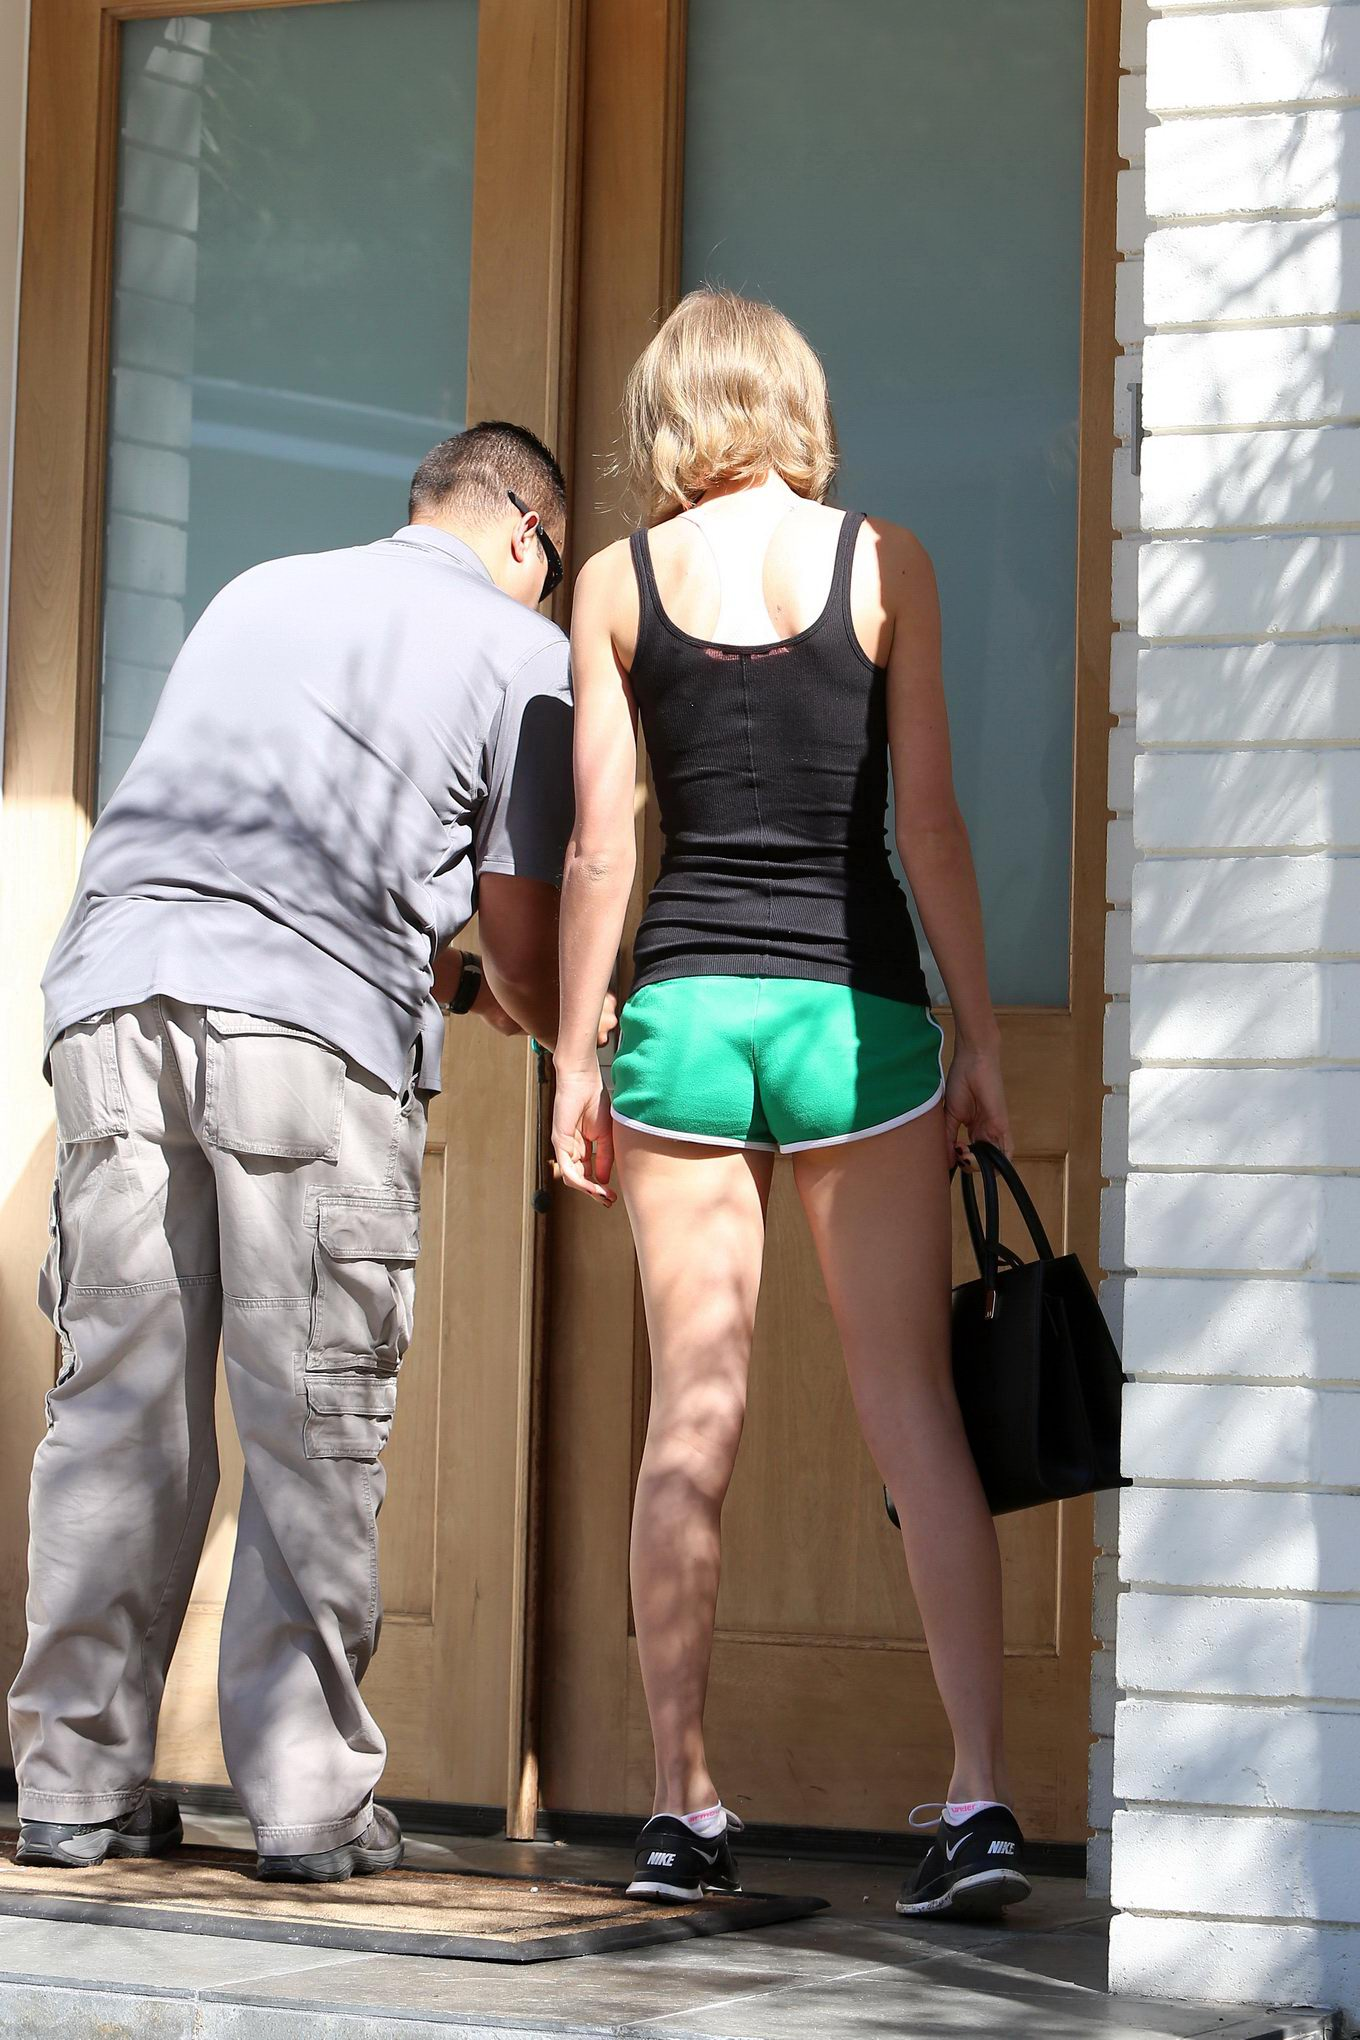 Taylor Swift shows off her ass wearing a tiny green shorts ...